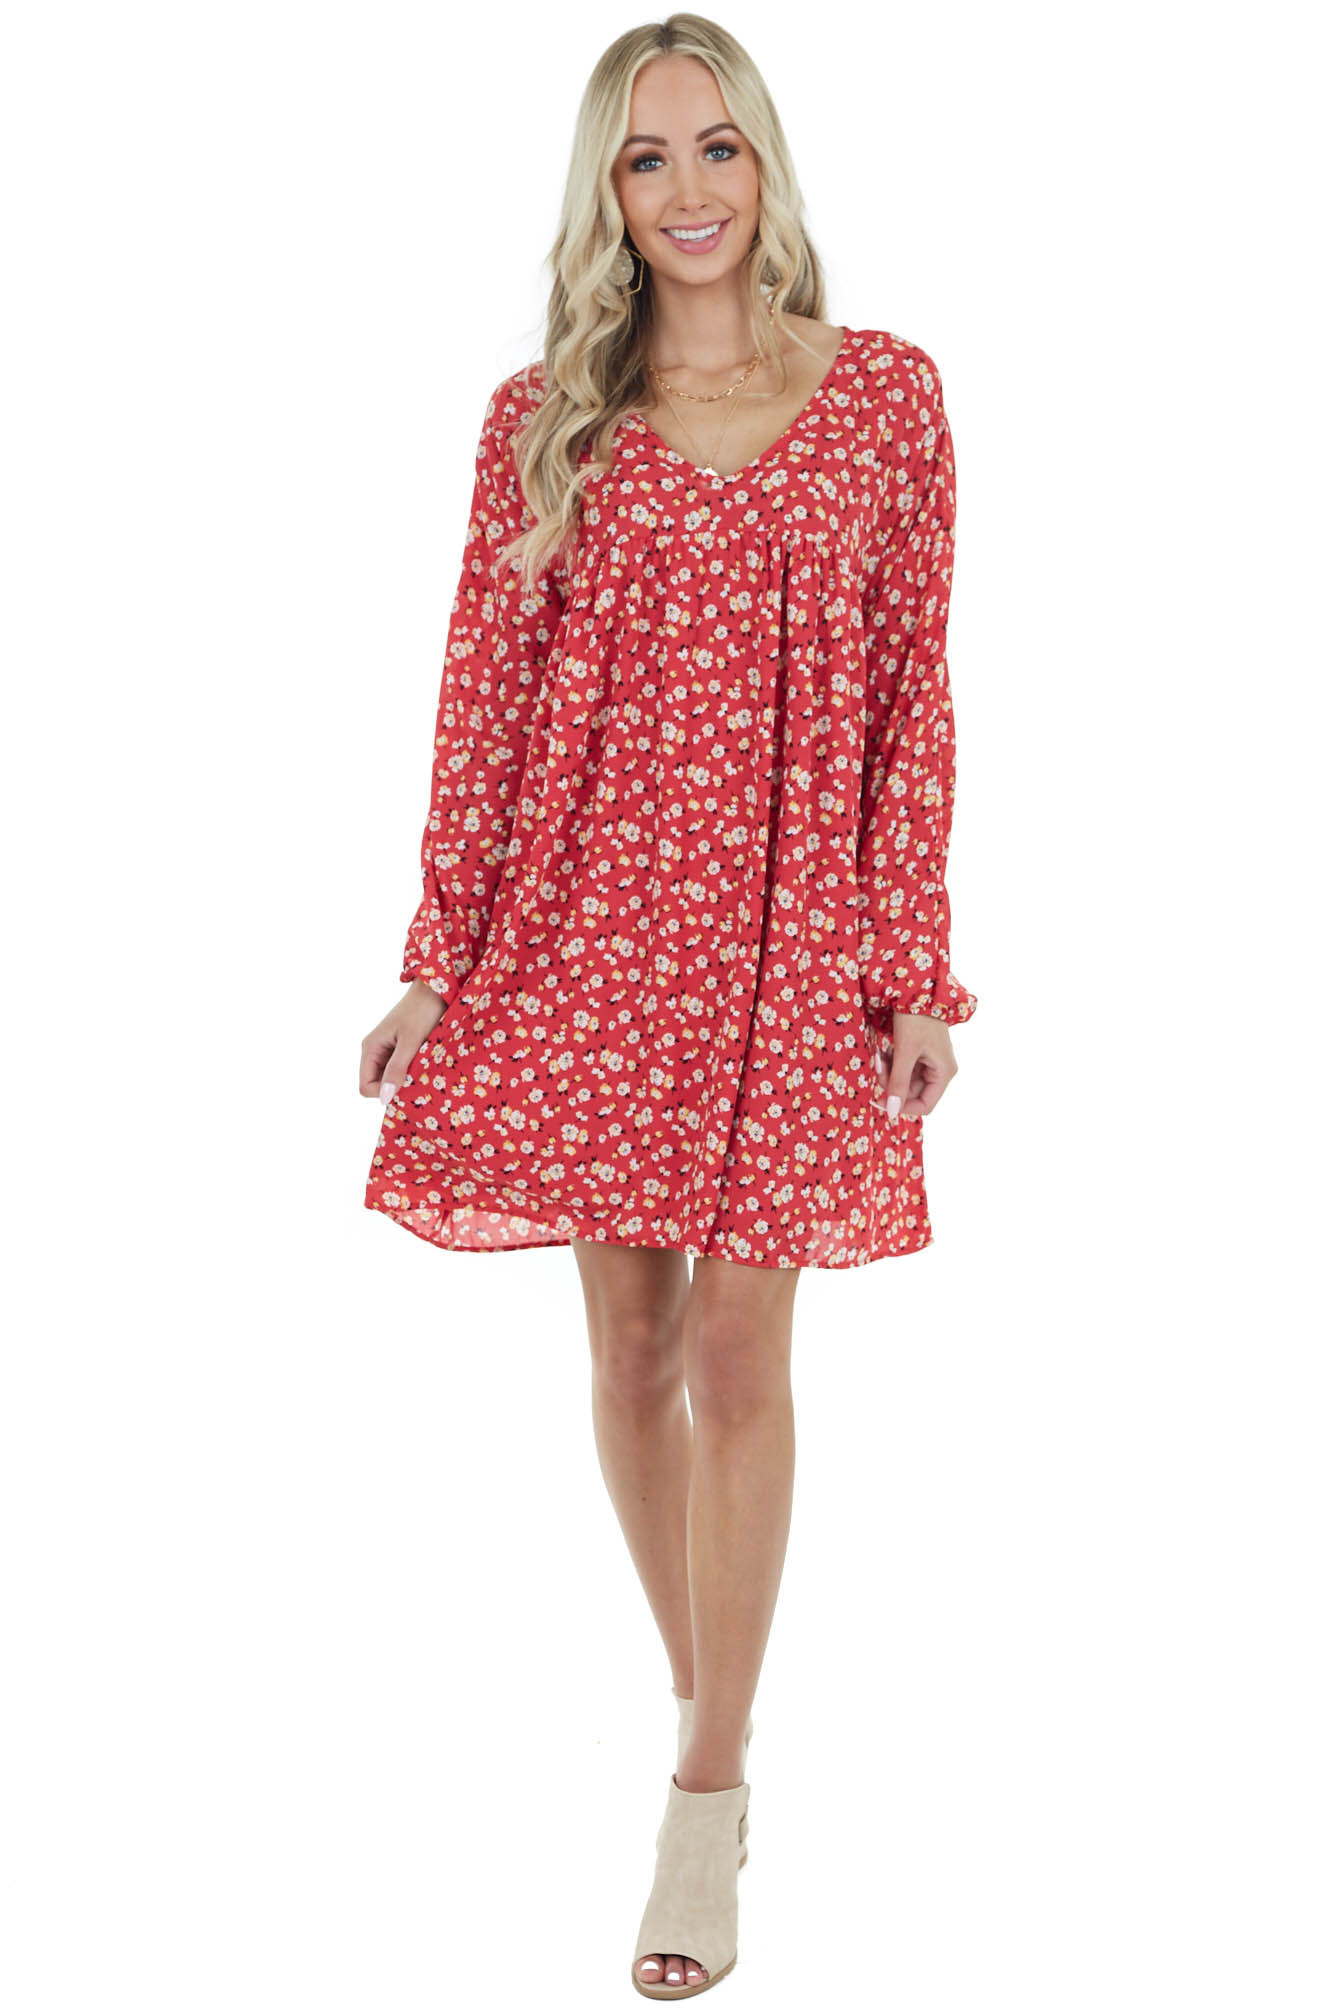 Crimson Red Floral Short Babydoll Dress with Long Sleeves